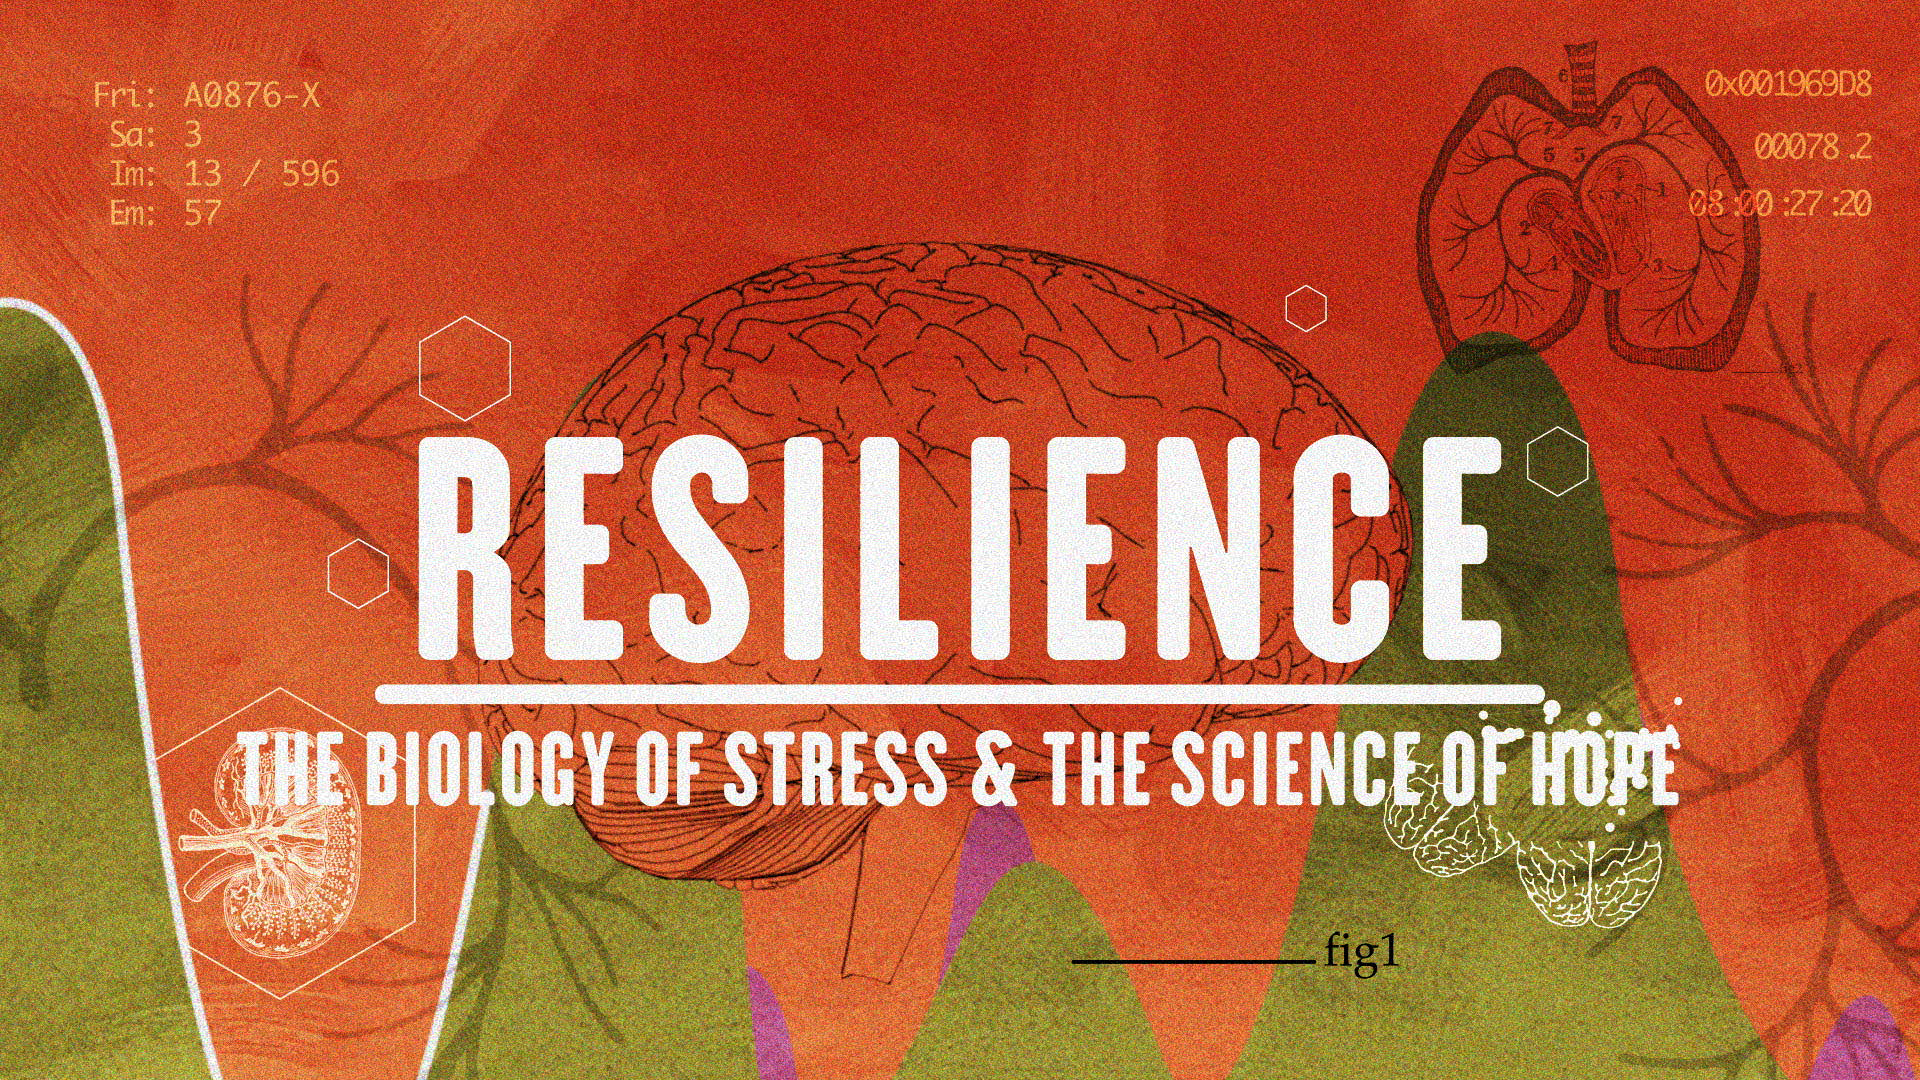 RESILIENCE: The Biology of Stress & the Science of Hope